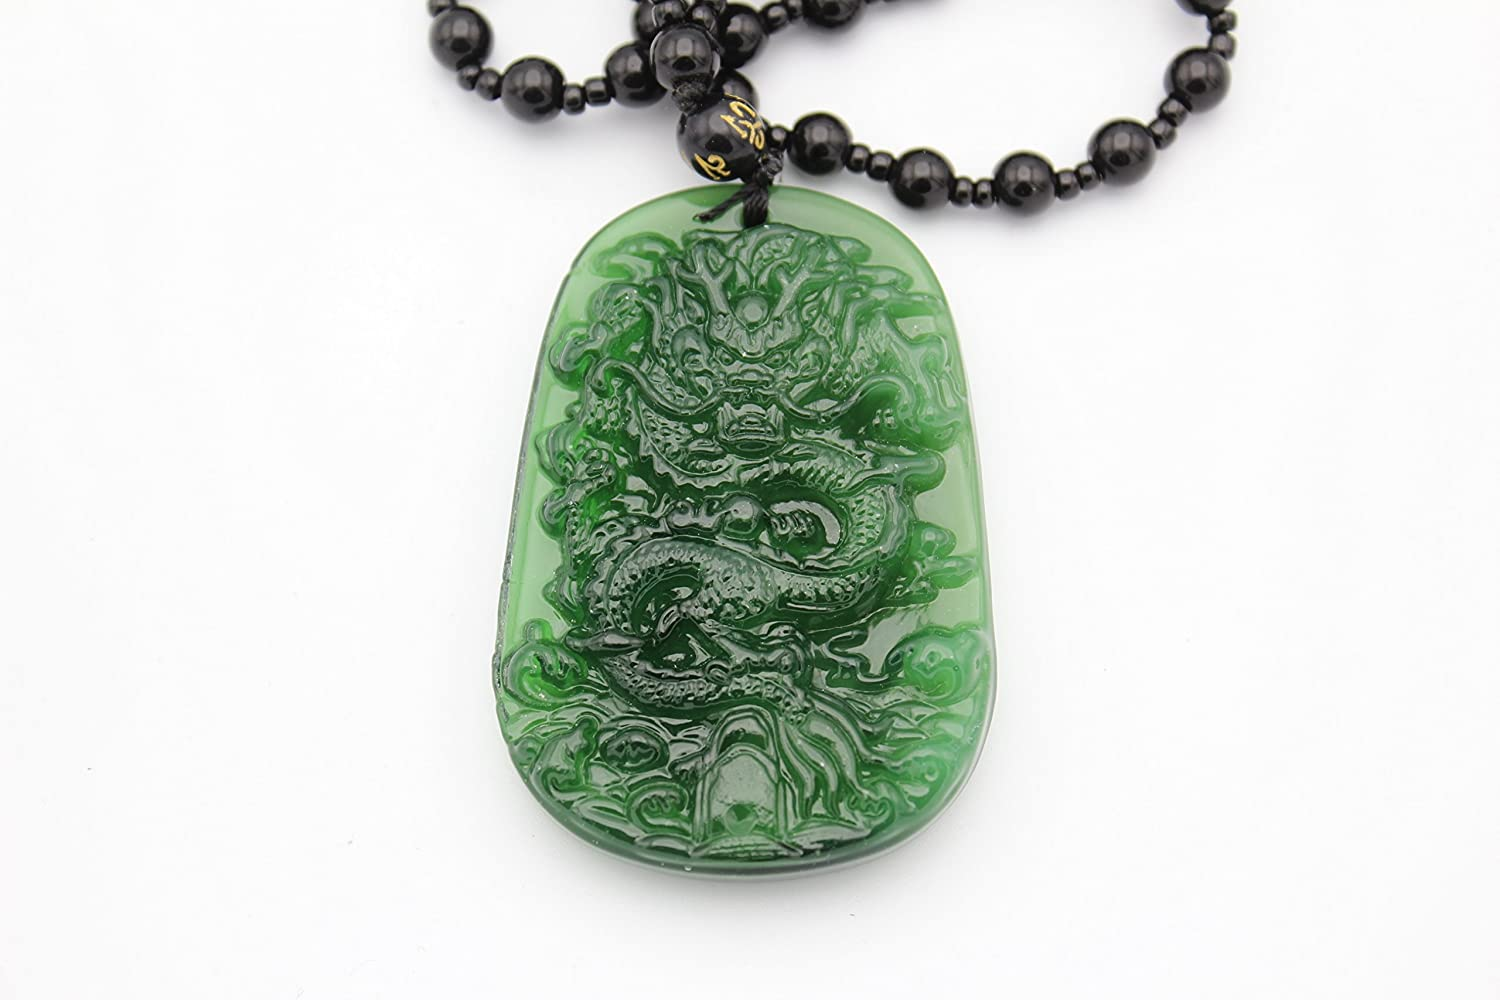 Large Chinese Jadeite Dragon For Success Pendant Obsidian Imitation Beads Necklace Feng Shui Hanging Charm (Black Jade) Beijing